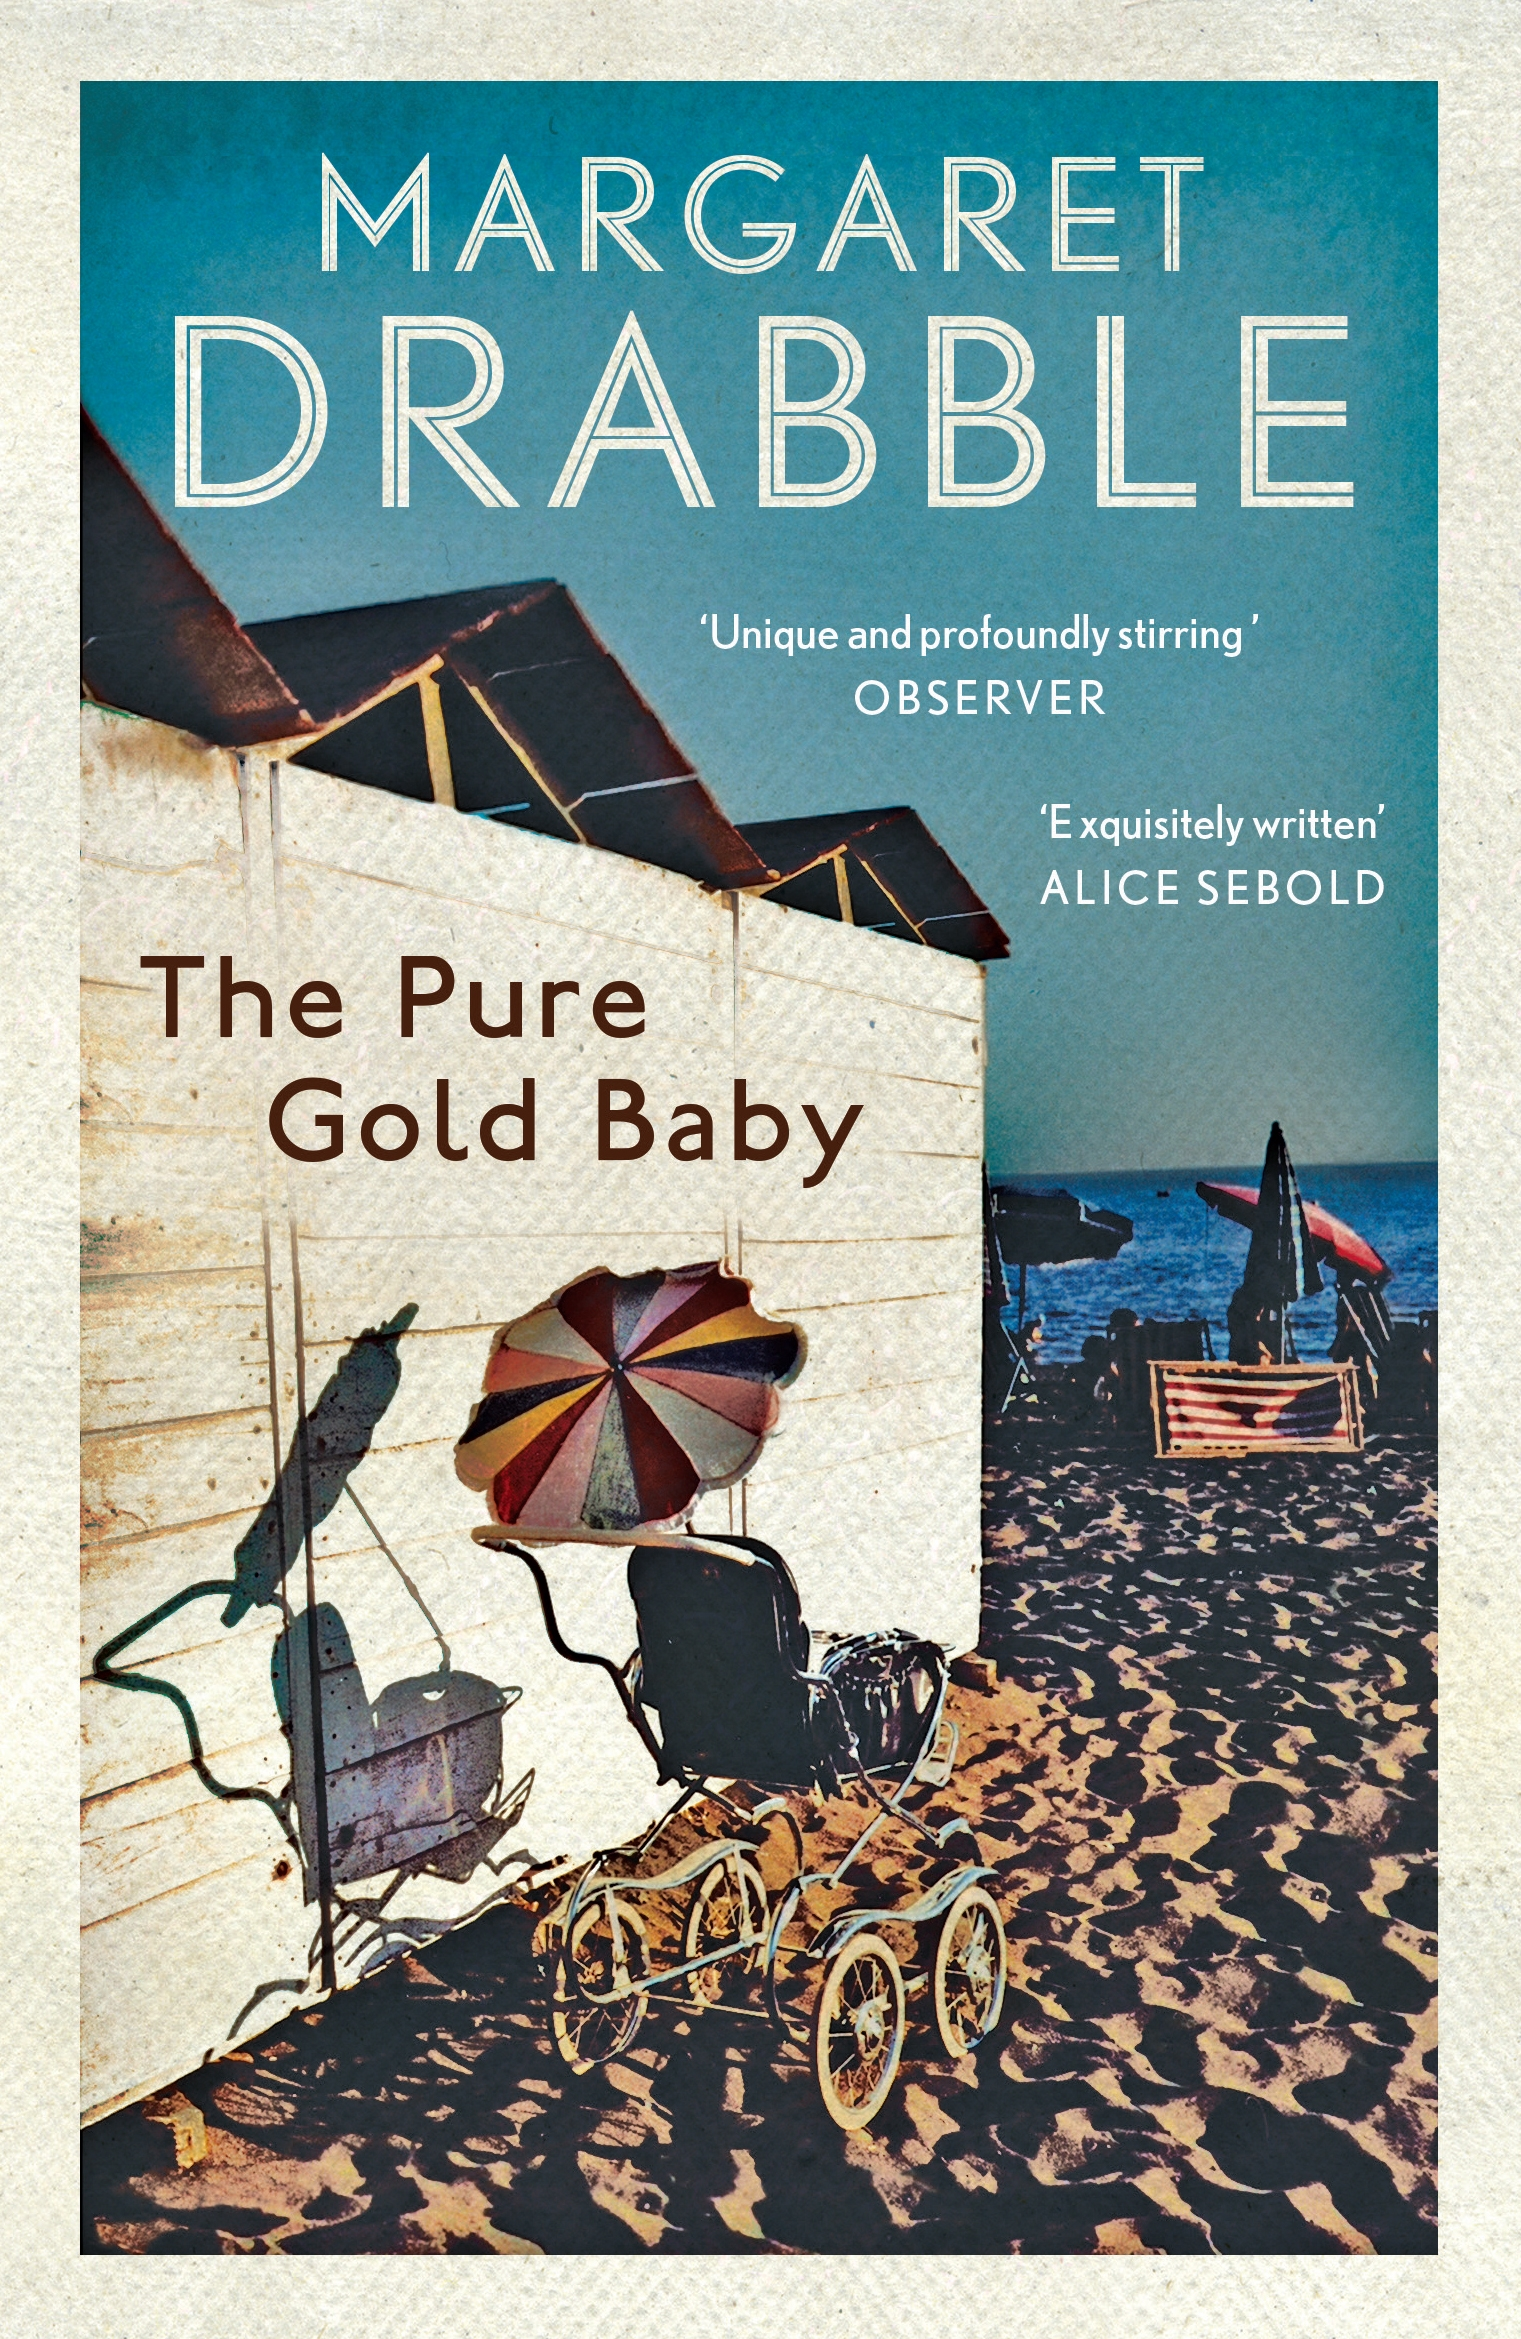 essay hindspring margaret drabble This essay will argue that margaret drabble has developed such a pattern, that there is a blueprint for fulfilment in the life of the modern independent woman to be found in her early work.